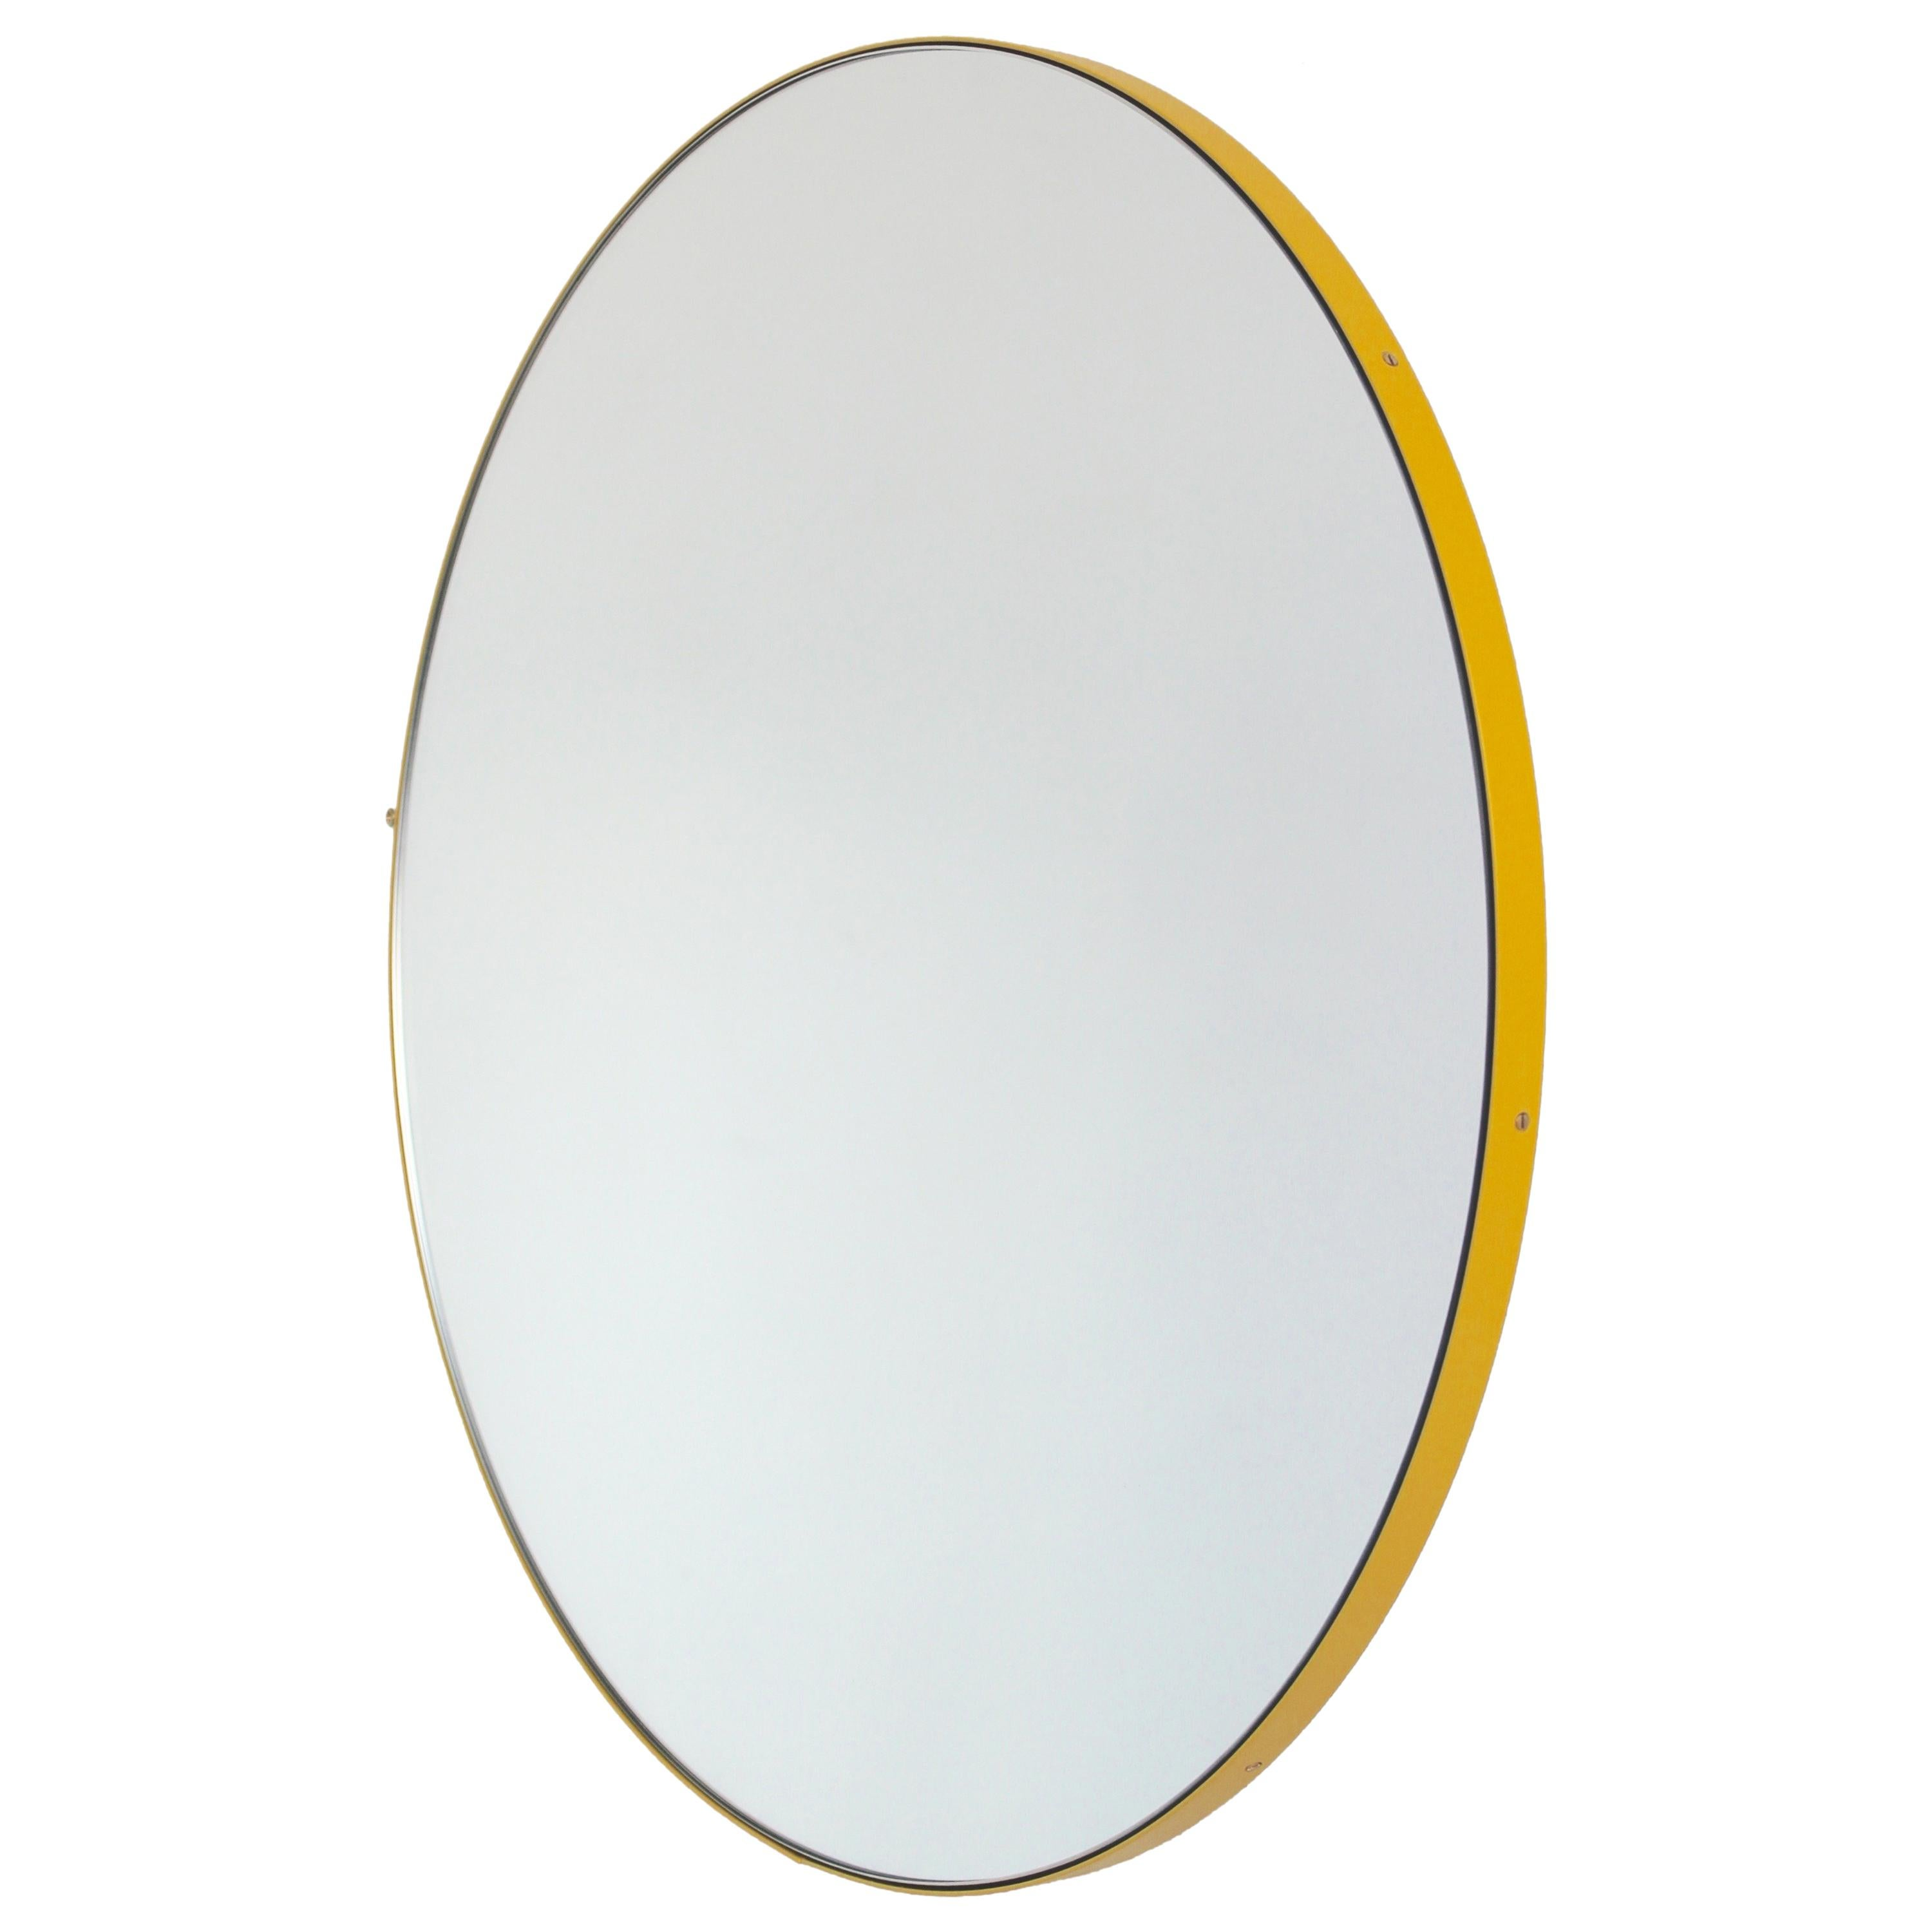 Orbis™ Round Modern Mirror with Yellow Frame - Small